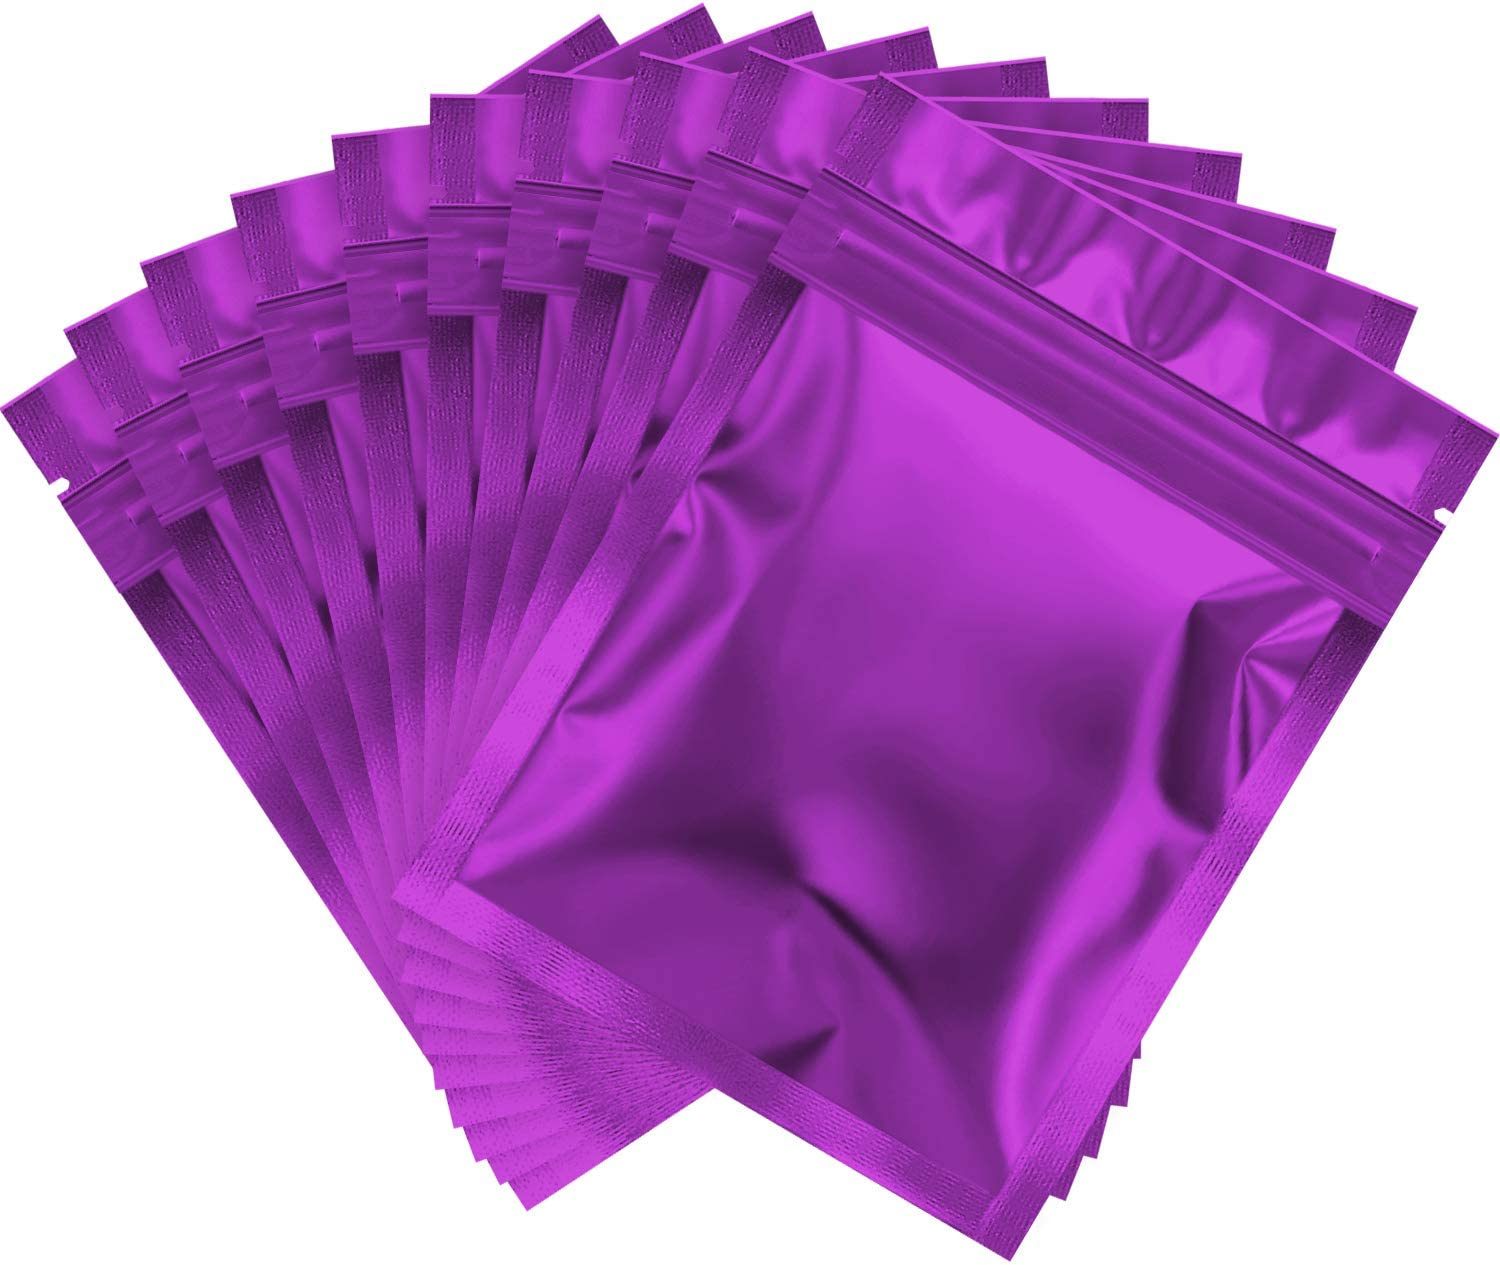 100 Pieces Smell Proof Bags Holographic Packaging Bags Storage Bag for Food Storage (Purple,3 x 4 Inch)